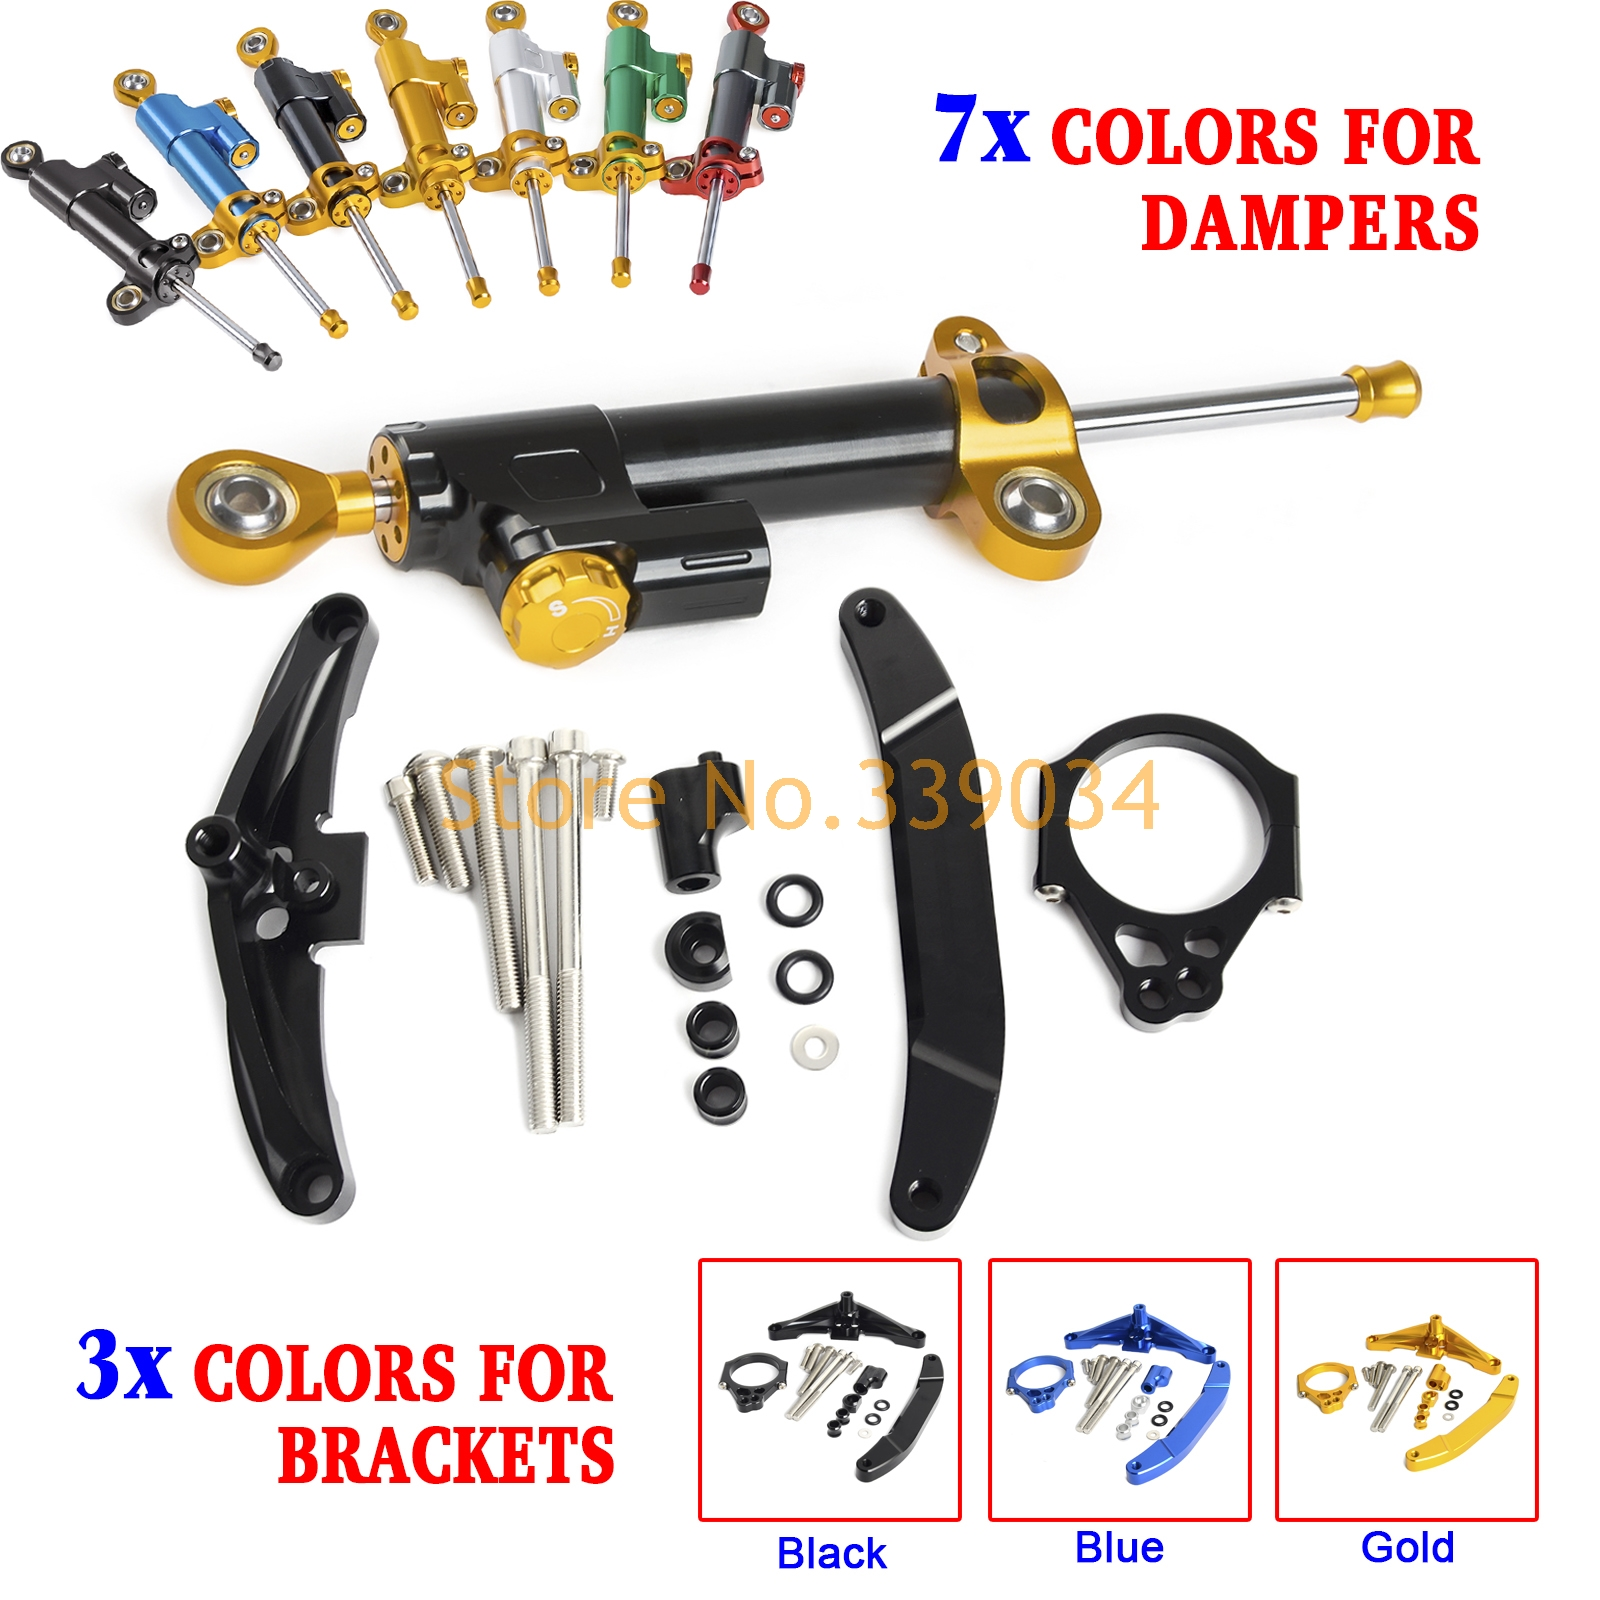 Motorcycle CNC Steering Damper Stabilizer Steering Damper Bracket For Yamaha FZ1 FAZER  2006 2007 2008 2009 2010 2011 2012-2015 motorcycle cnc steering damper mounting bracket for yamaha fz1 fazer 2006 2007 2008 2015